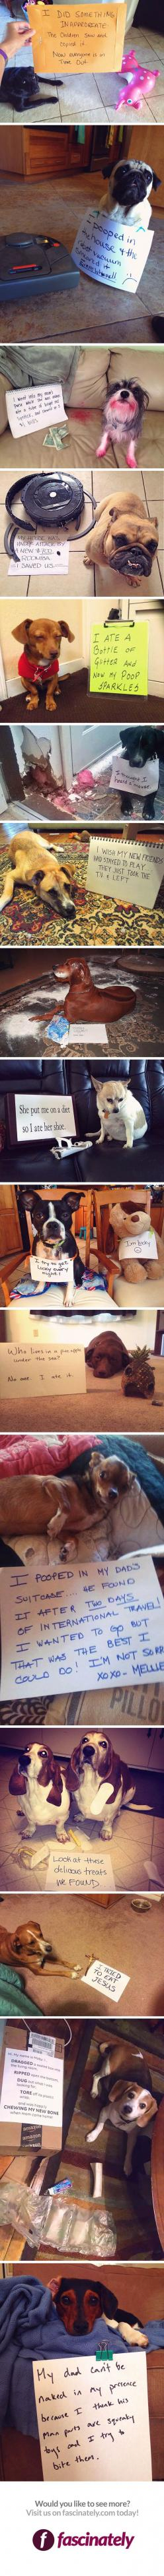 Naw!!!: Naughtiest Dogs, Funny Pets, Dogs Ear, Dog Shaming, Dogs Funny Humor, Funny Dogs, Bad Dog, Funny Animal, Naughty Dogs